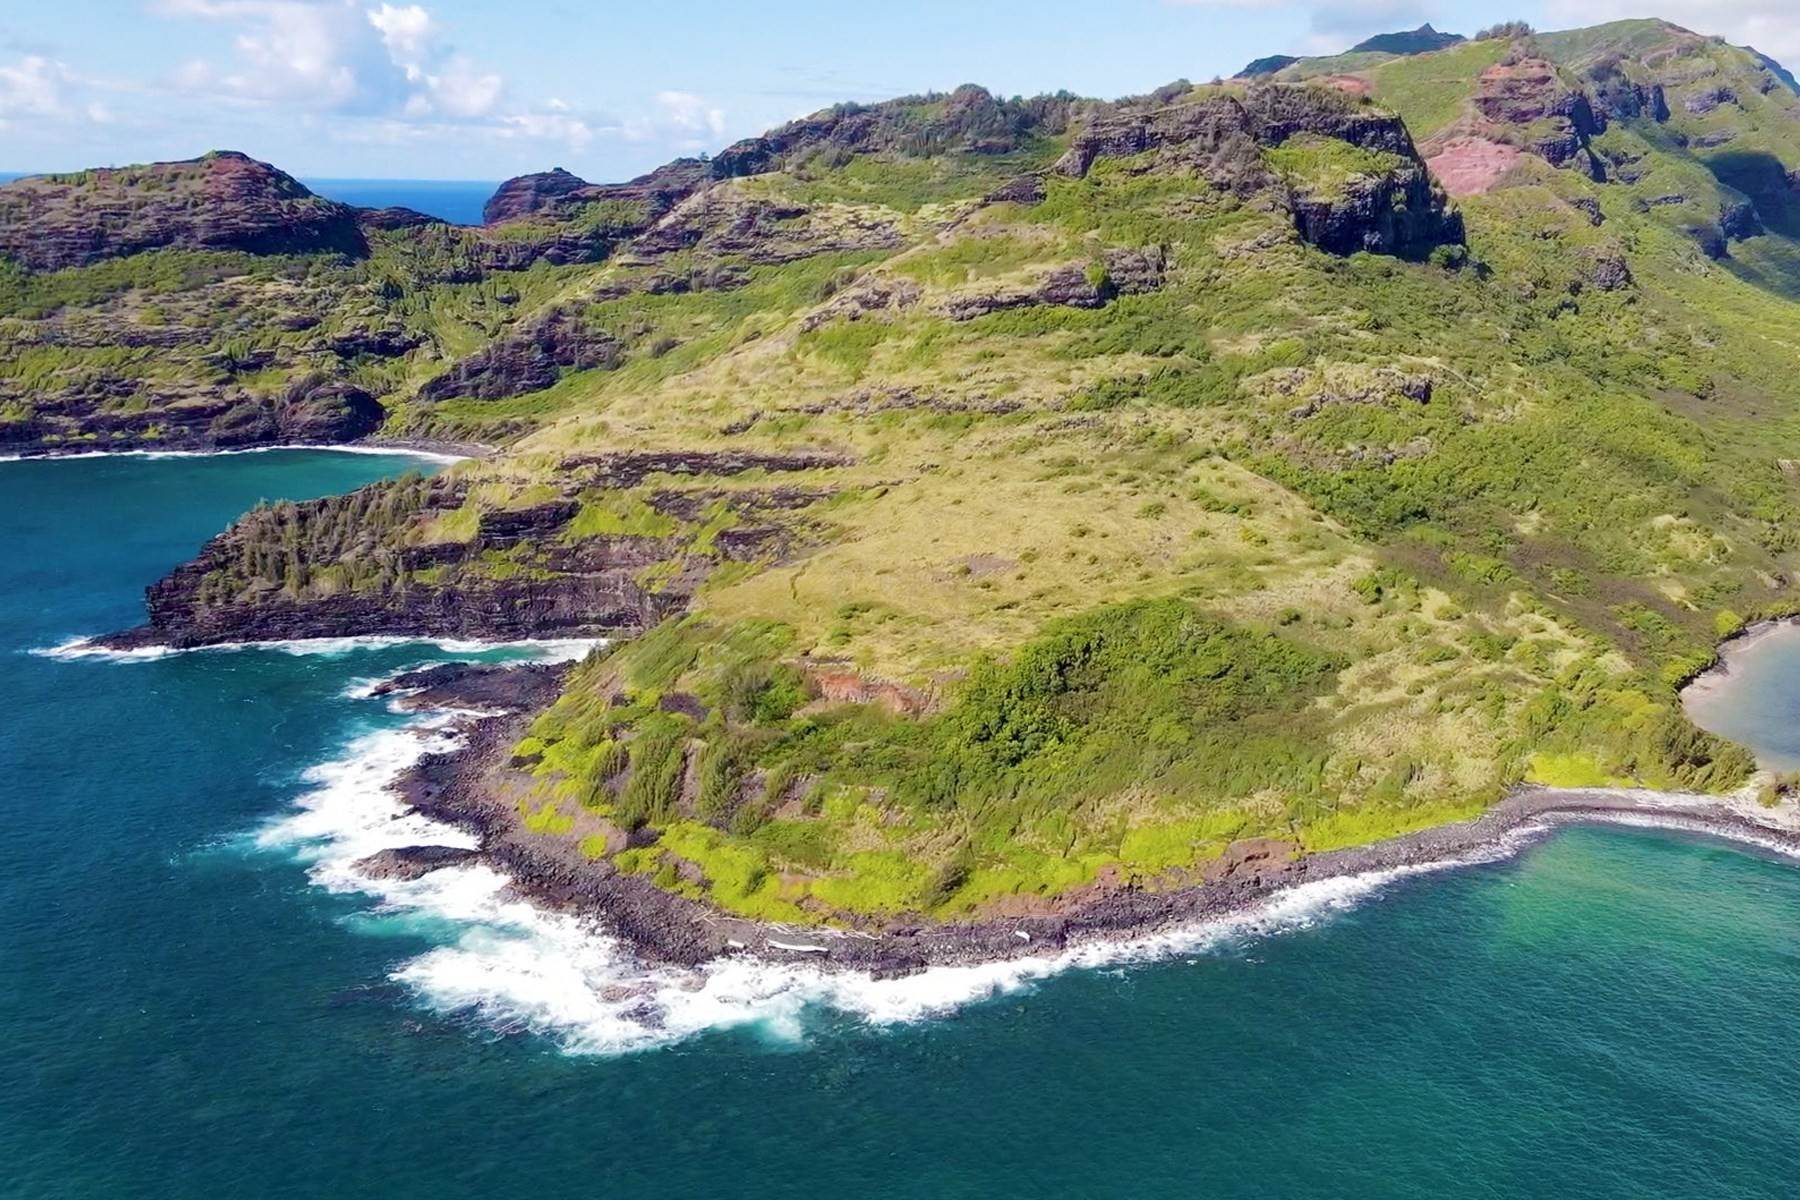 Land for Sale at NIUMALU Lihue, HI 96766 Niumalu Lihue, Hawaii 96766 United States